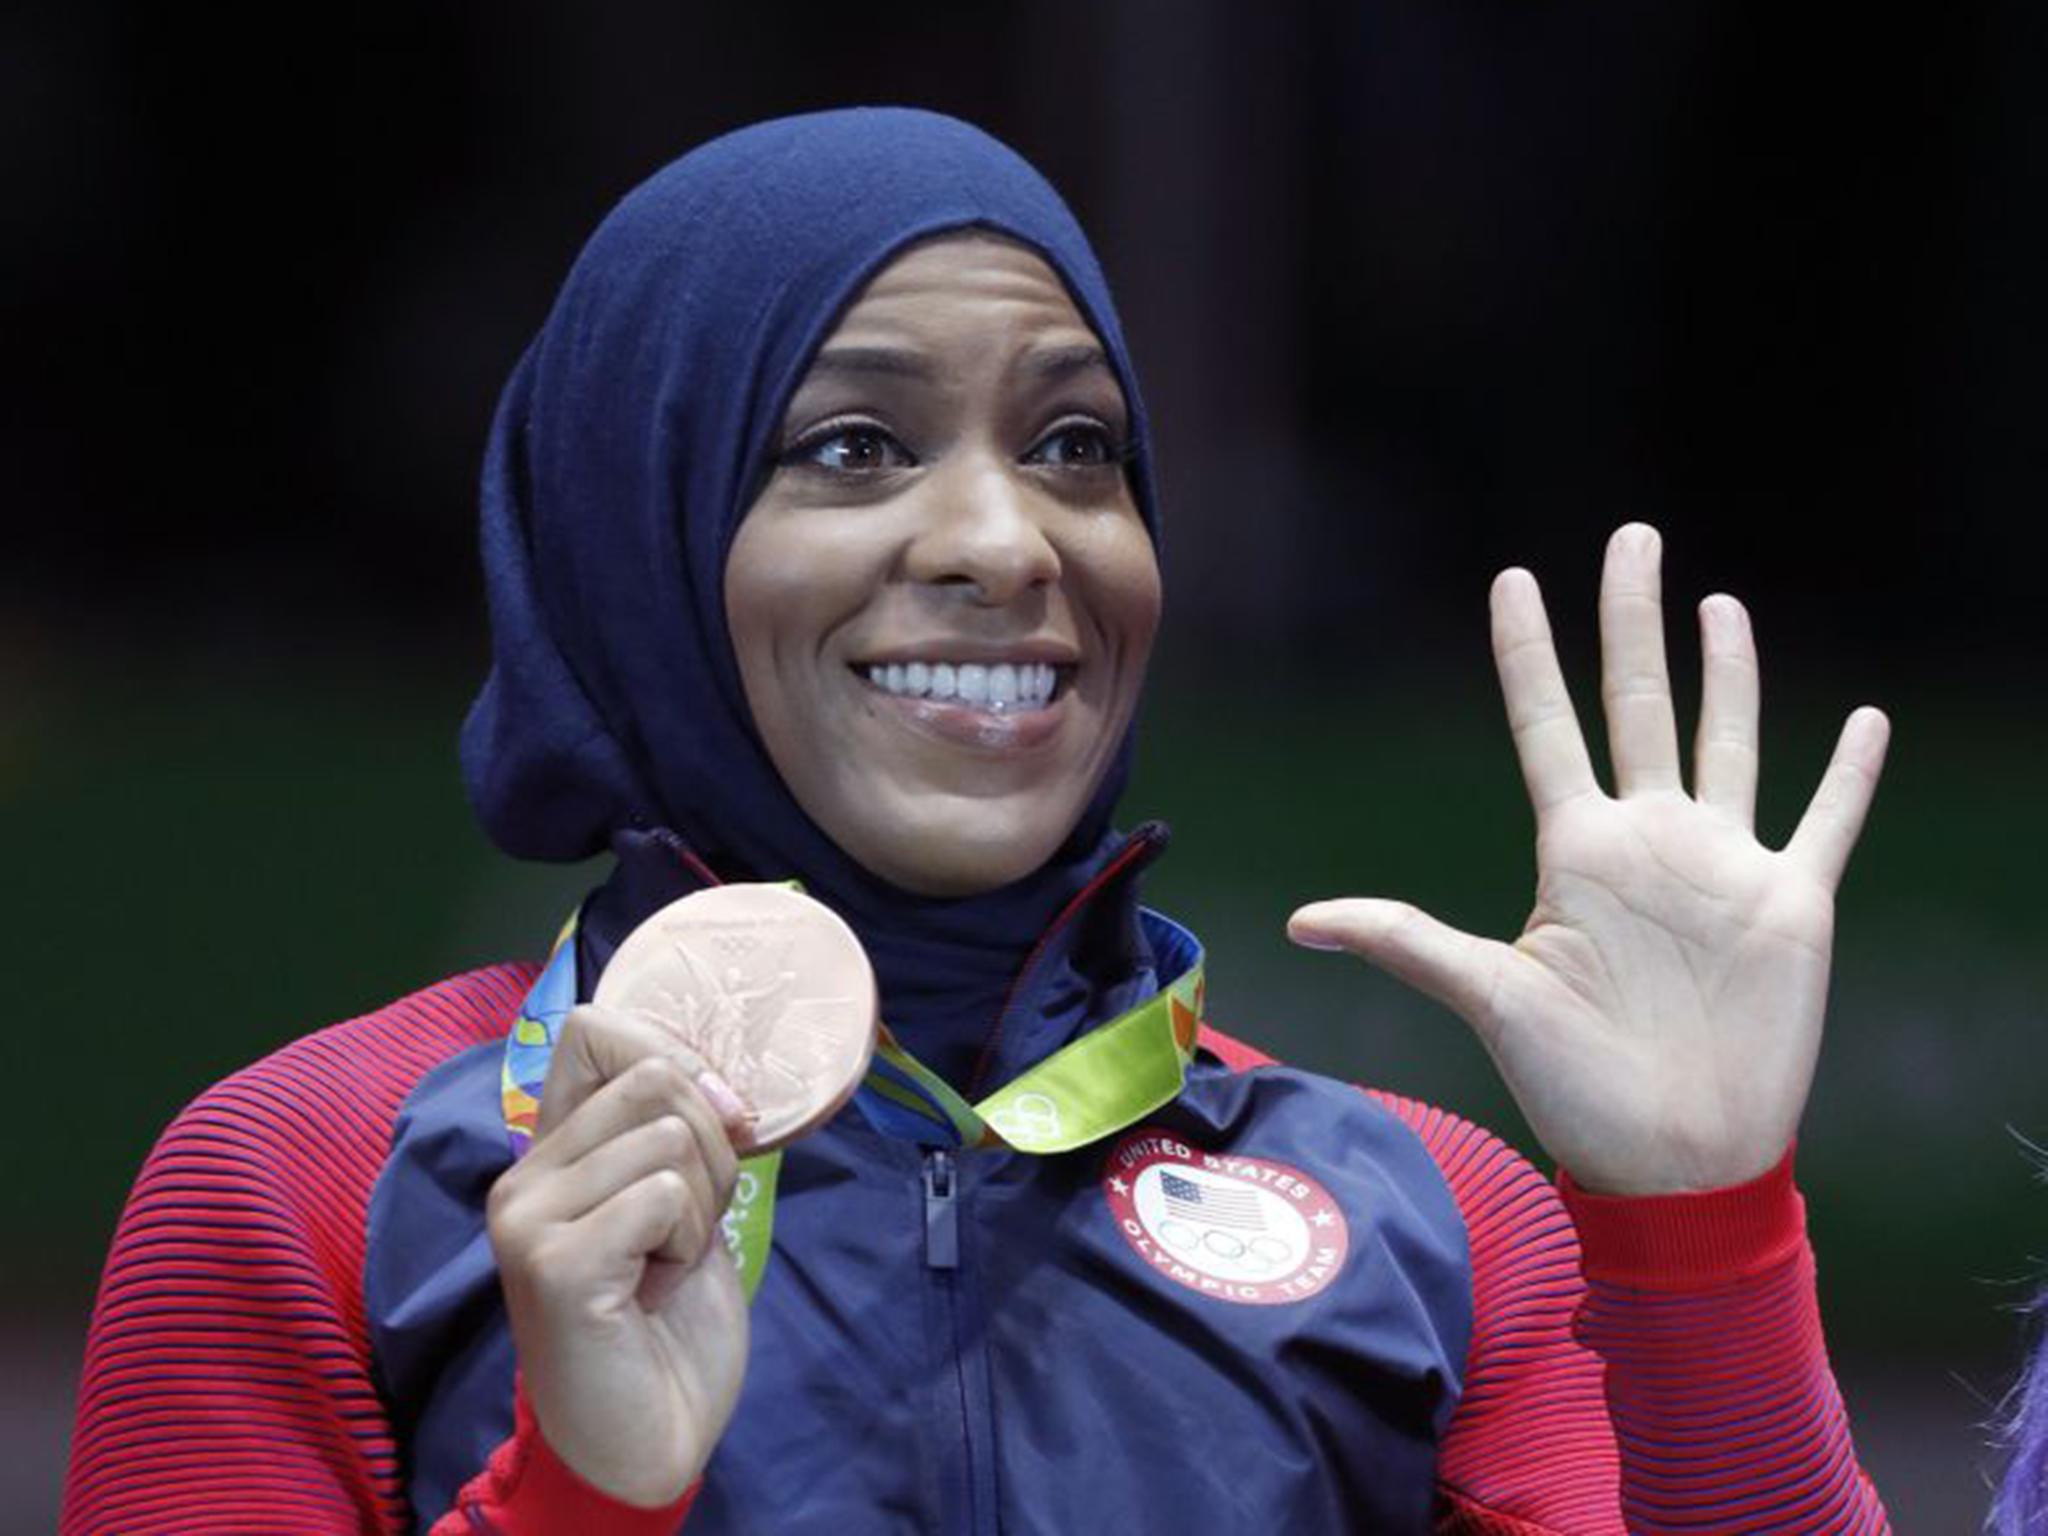 Fencer Ibtihaj Muhammad became the first Muslim-American woman to win an Olympic medal with a bronze at Rio 2016 in the team sabre event ©Getty Images